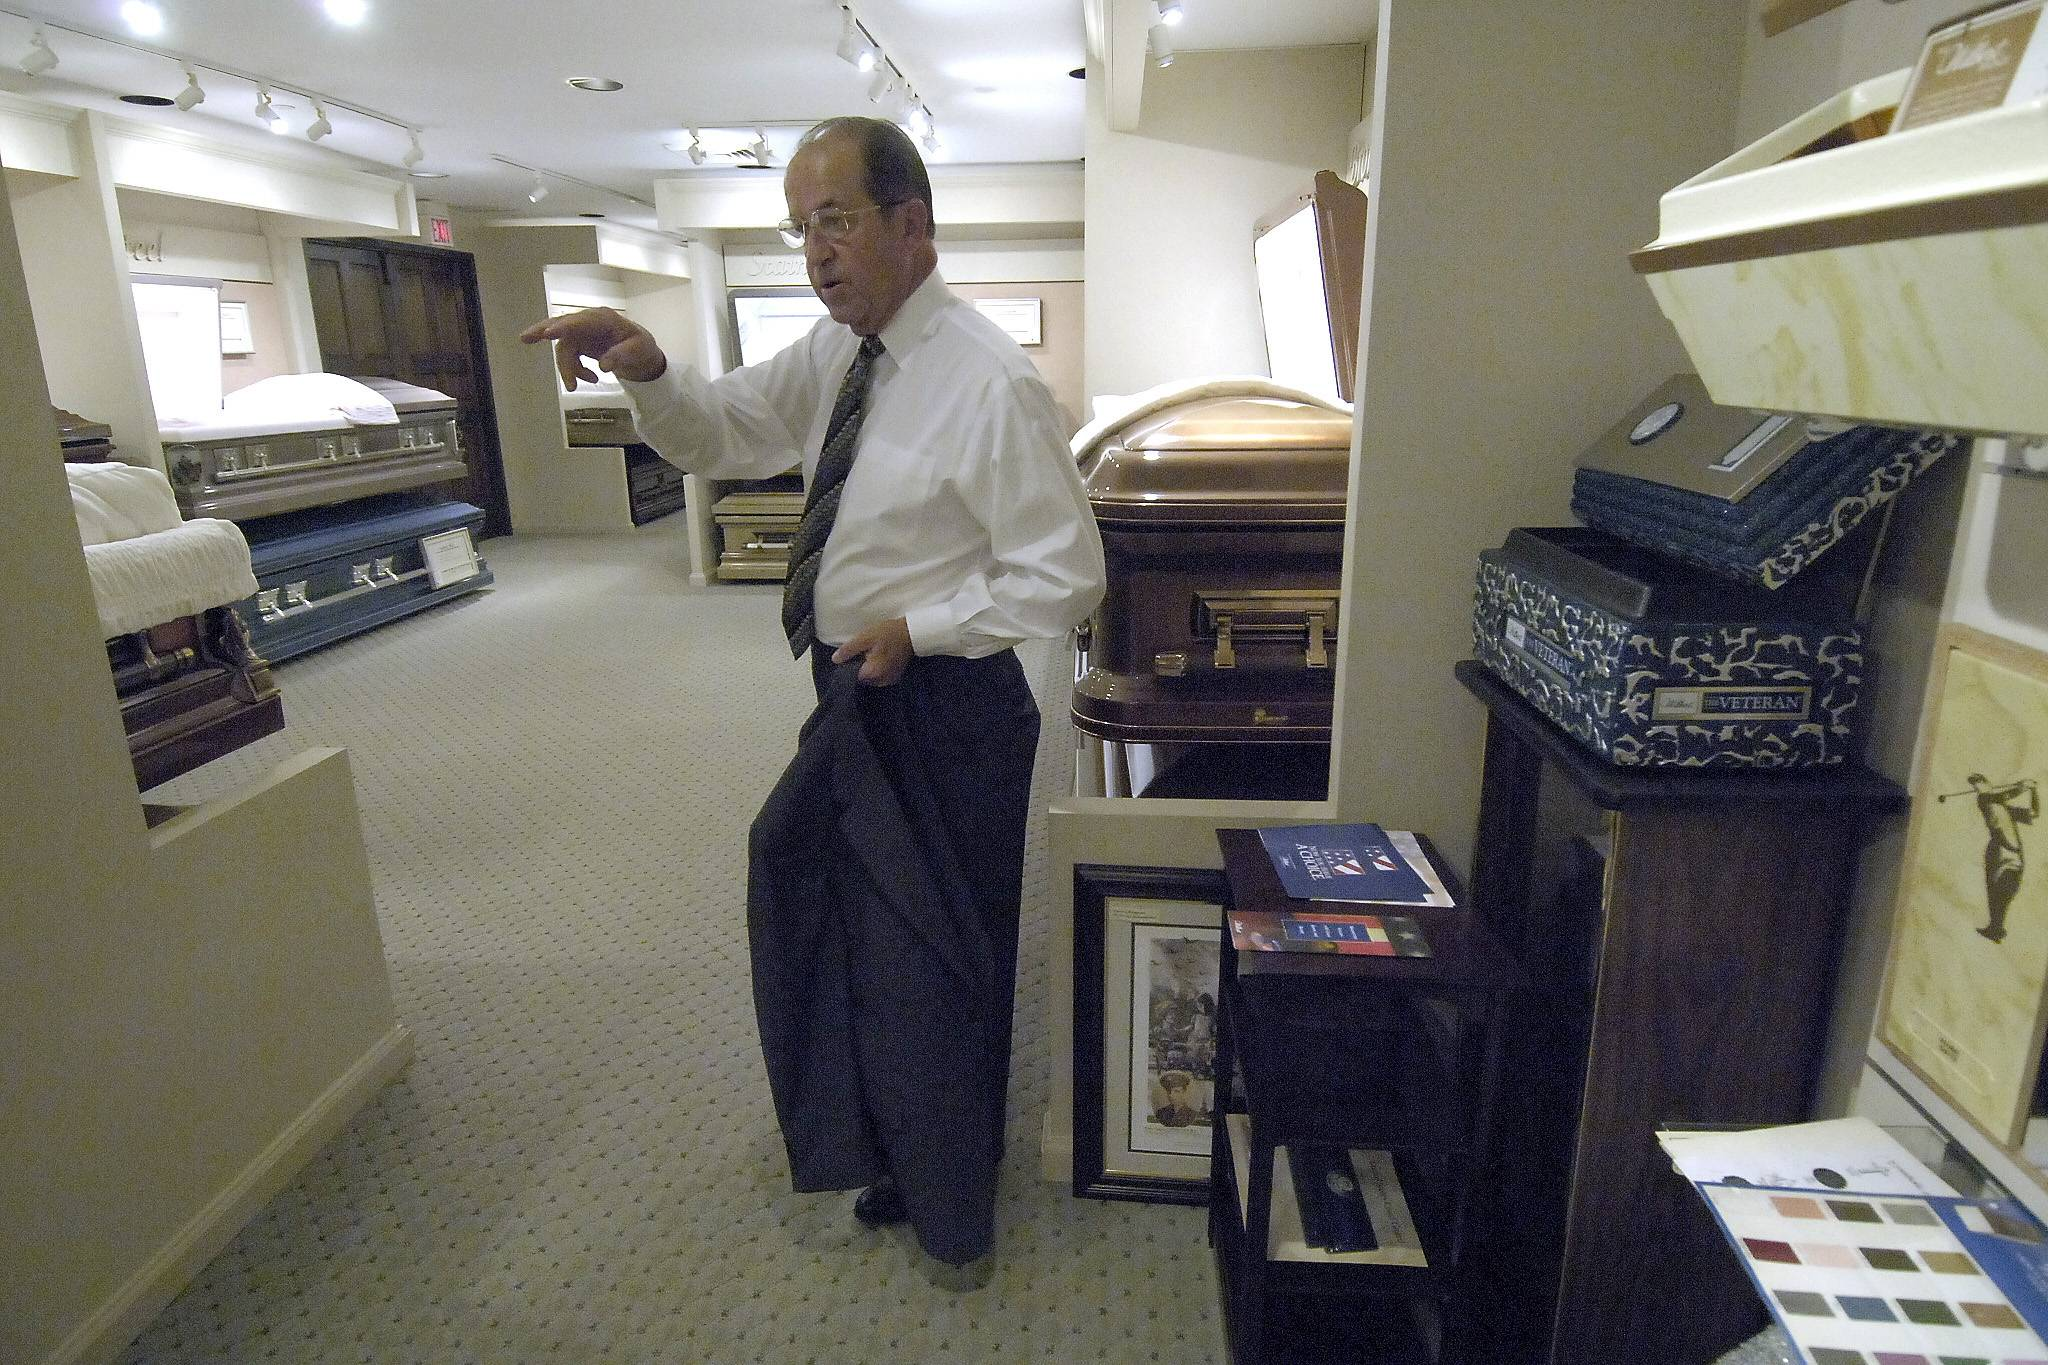 John Glueckert Sr. ran Glueckert Funeral Home in Arlington Heights, having bought the Haire Funeral Home where he was manager in 1970 and later renaming it.